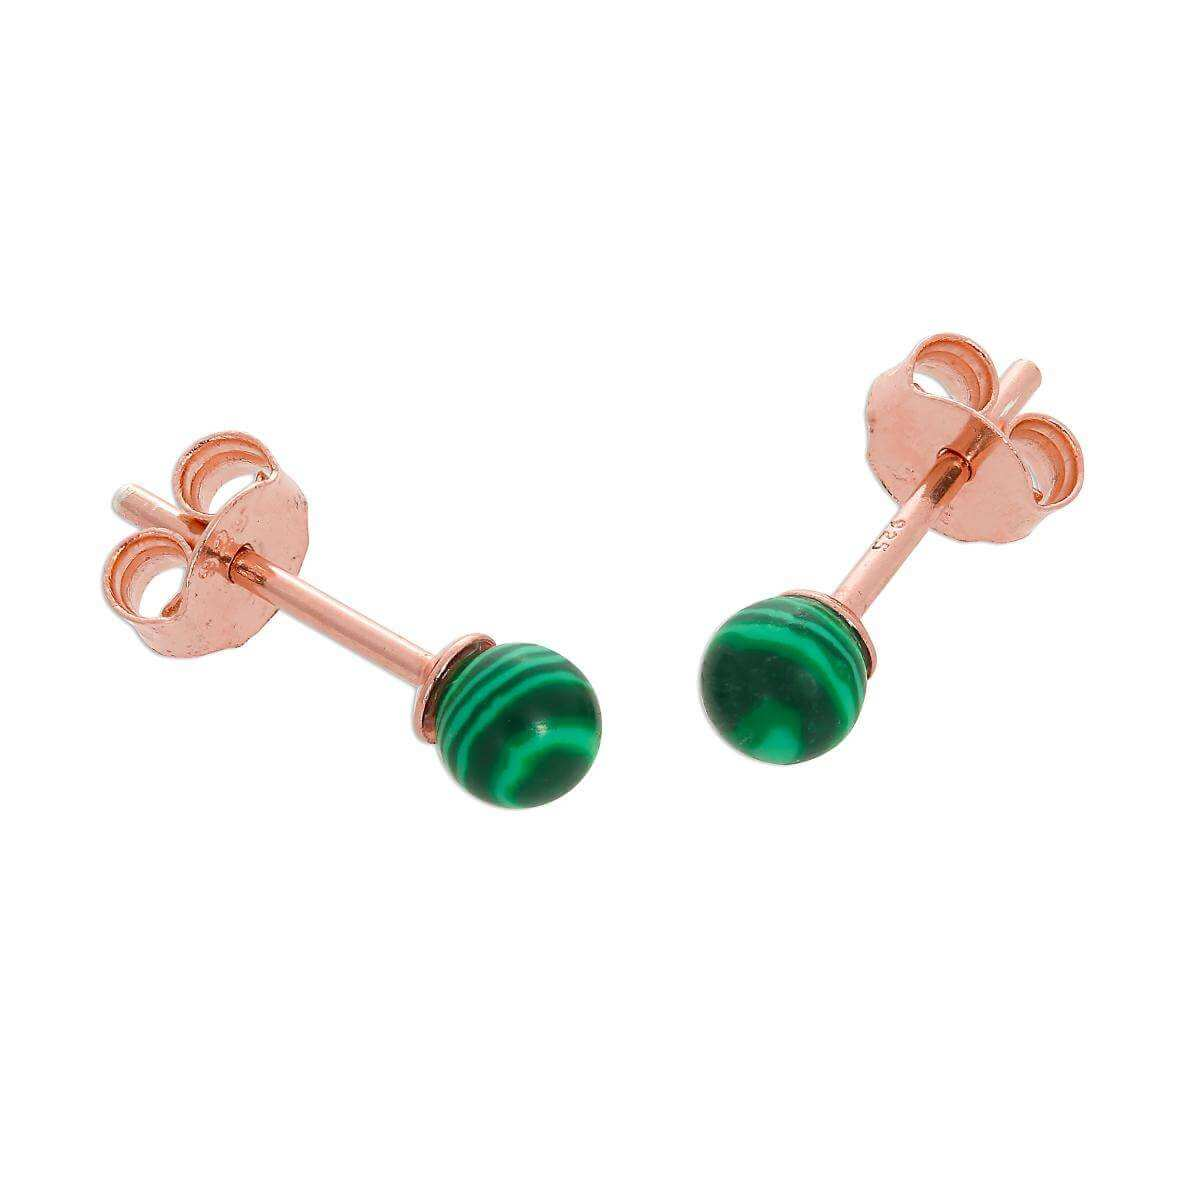 Rose Gold Plated Sterling Silver & Jade Enamel Stud Earrings